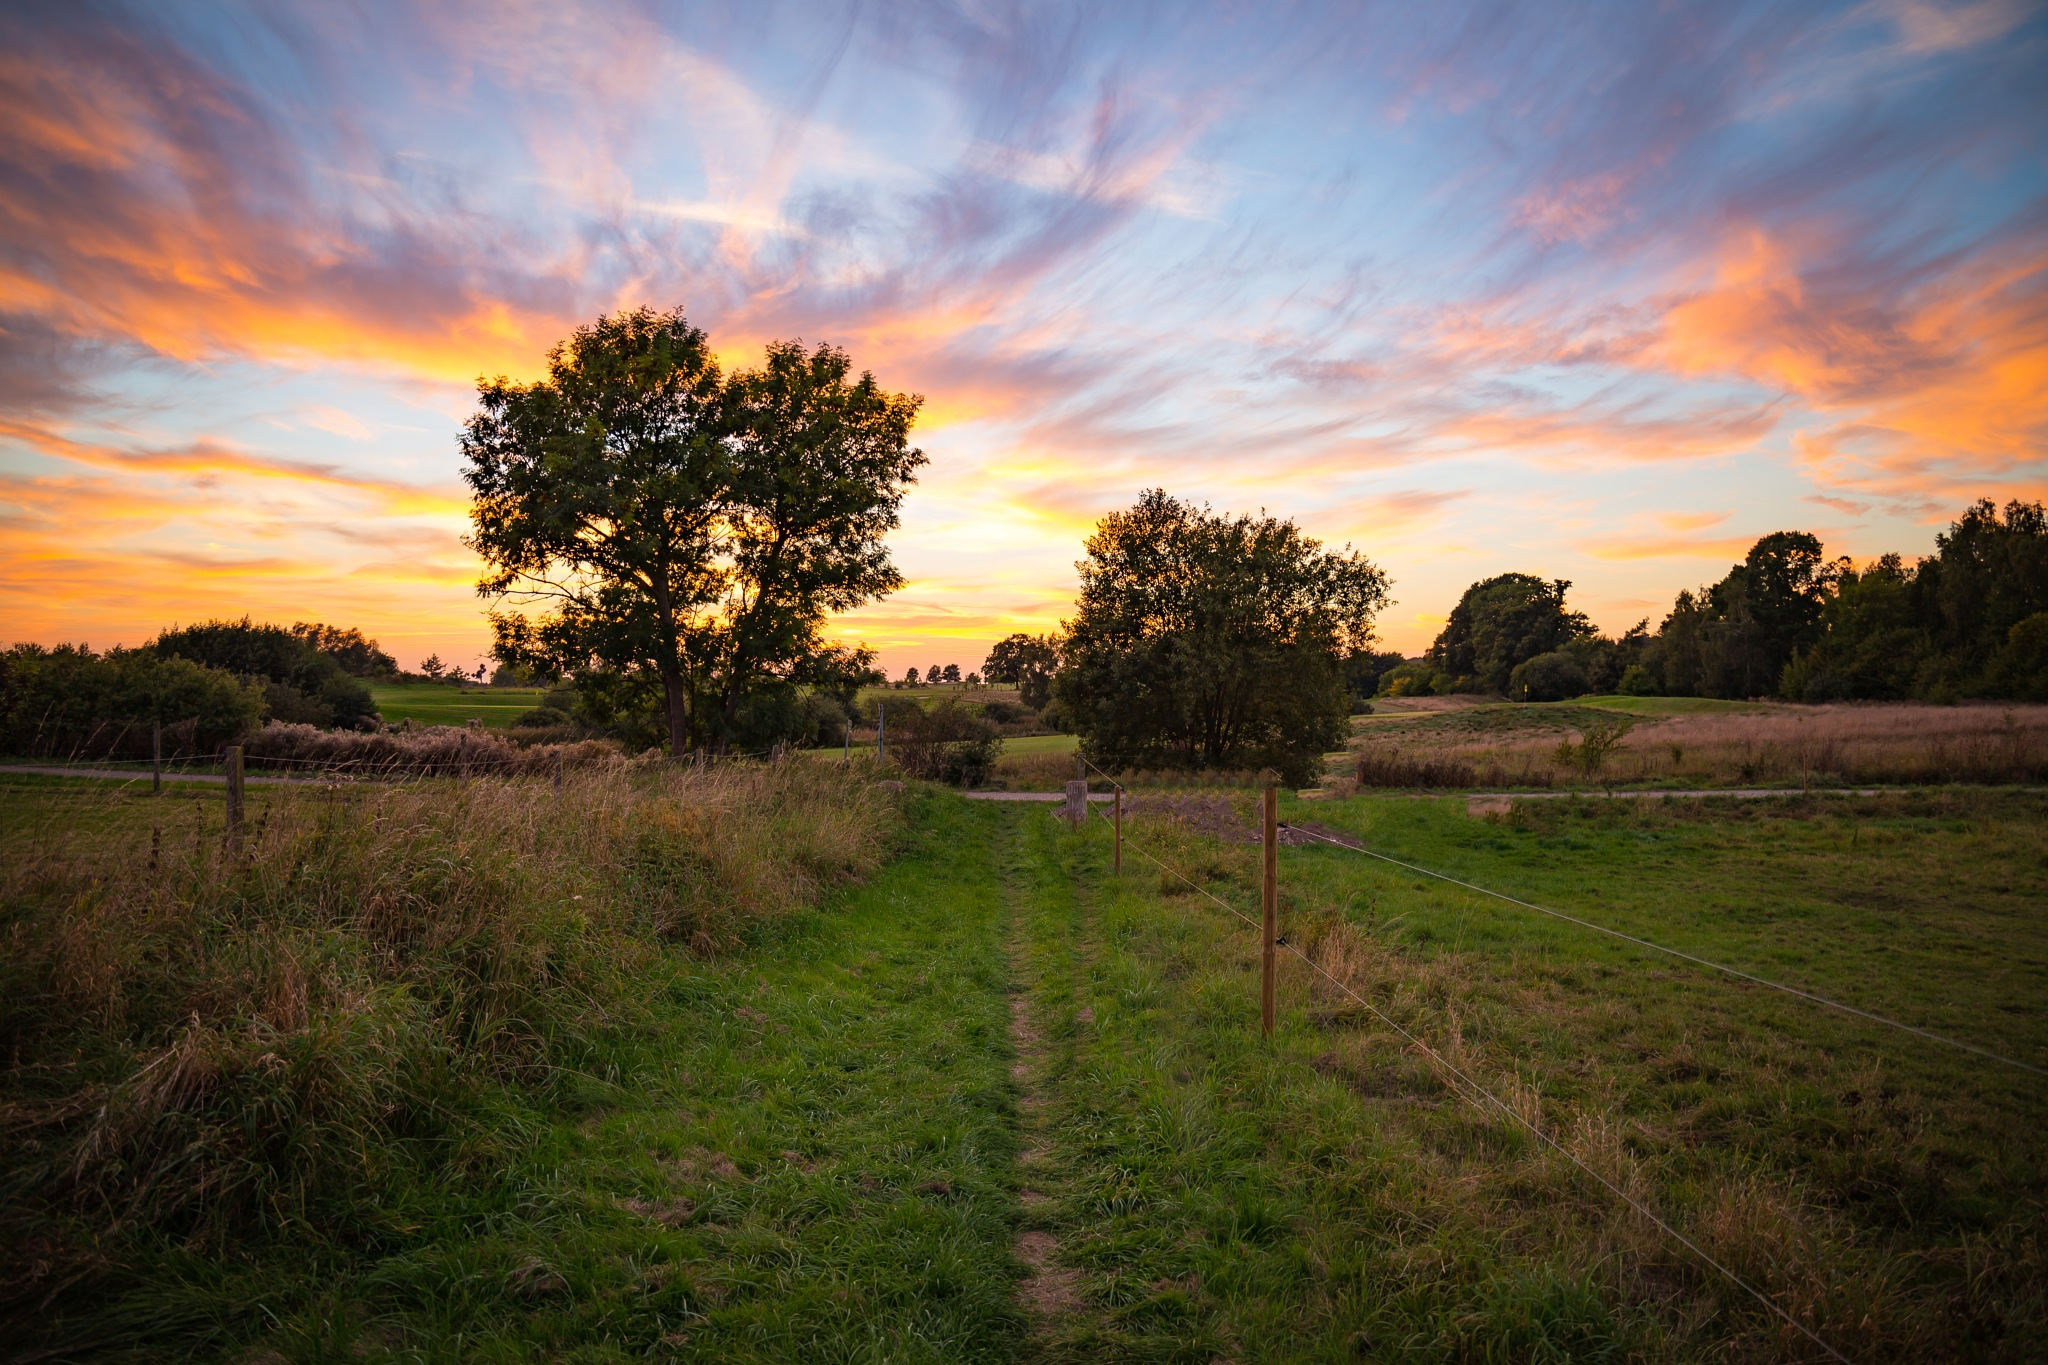 Late Summer Sunset by André Soerensen